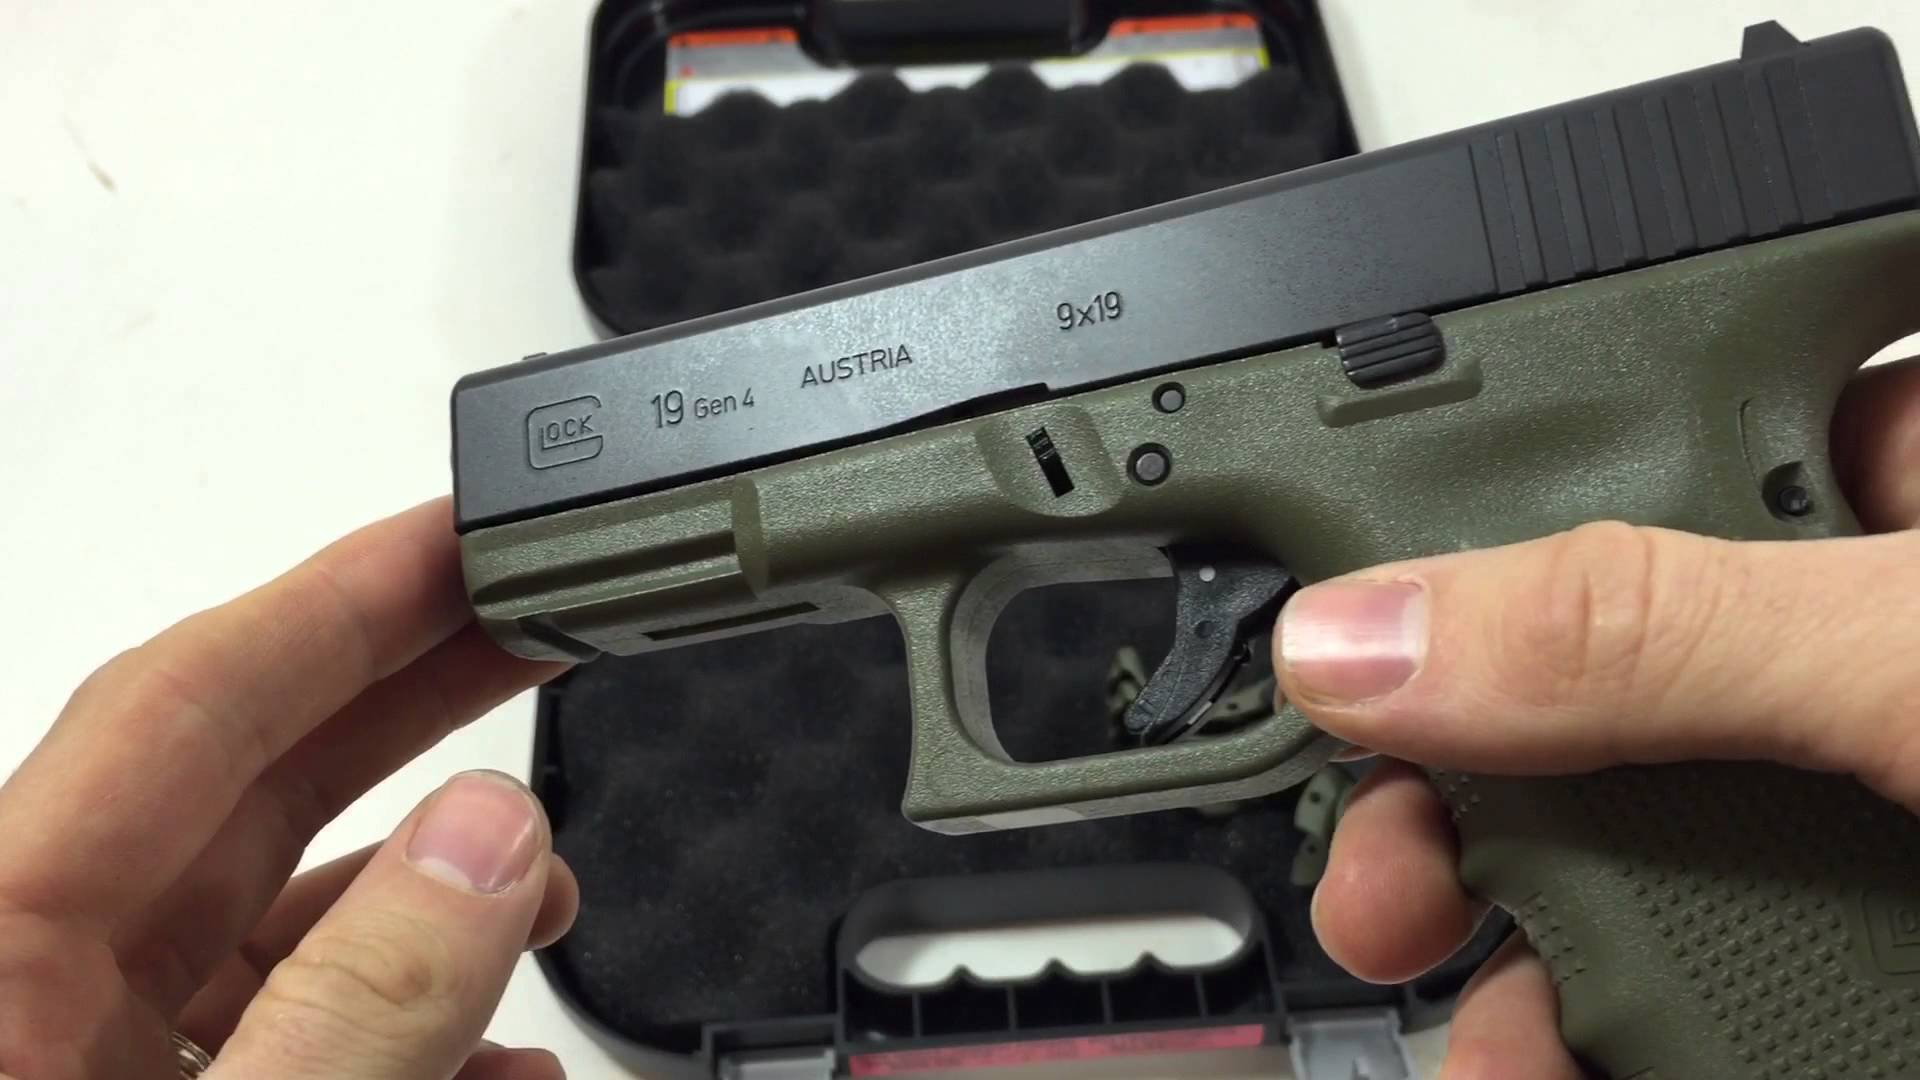 New Battlefield Green Glock 19 Gen 4 G19 #Quicklook